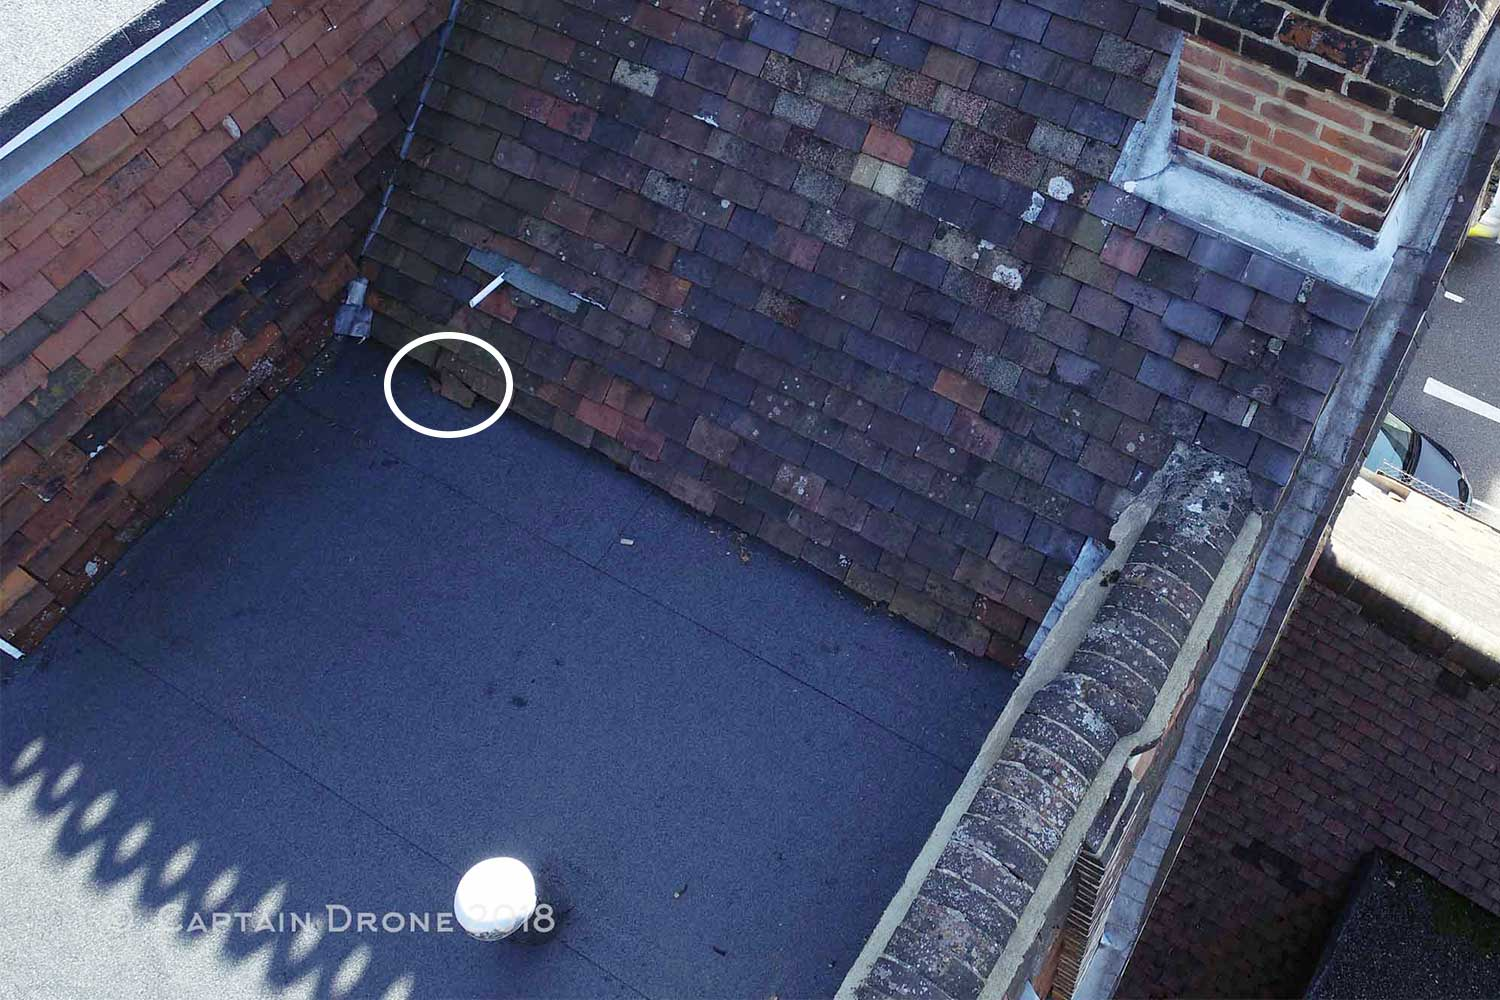 Broken Tile Identified With A Captain Drone Roof Inspection